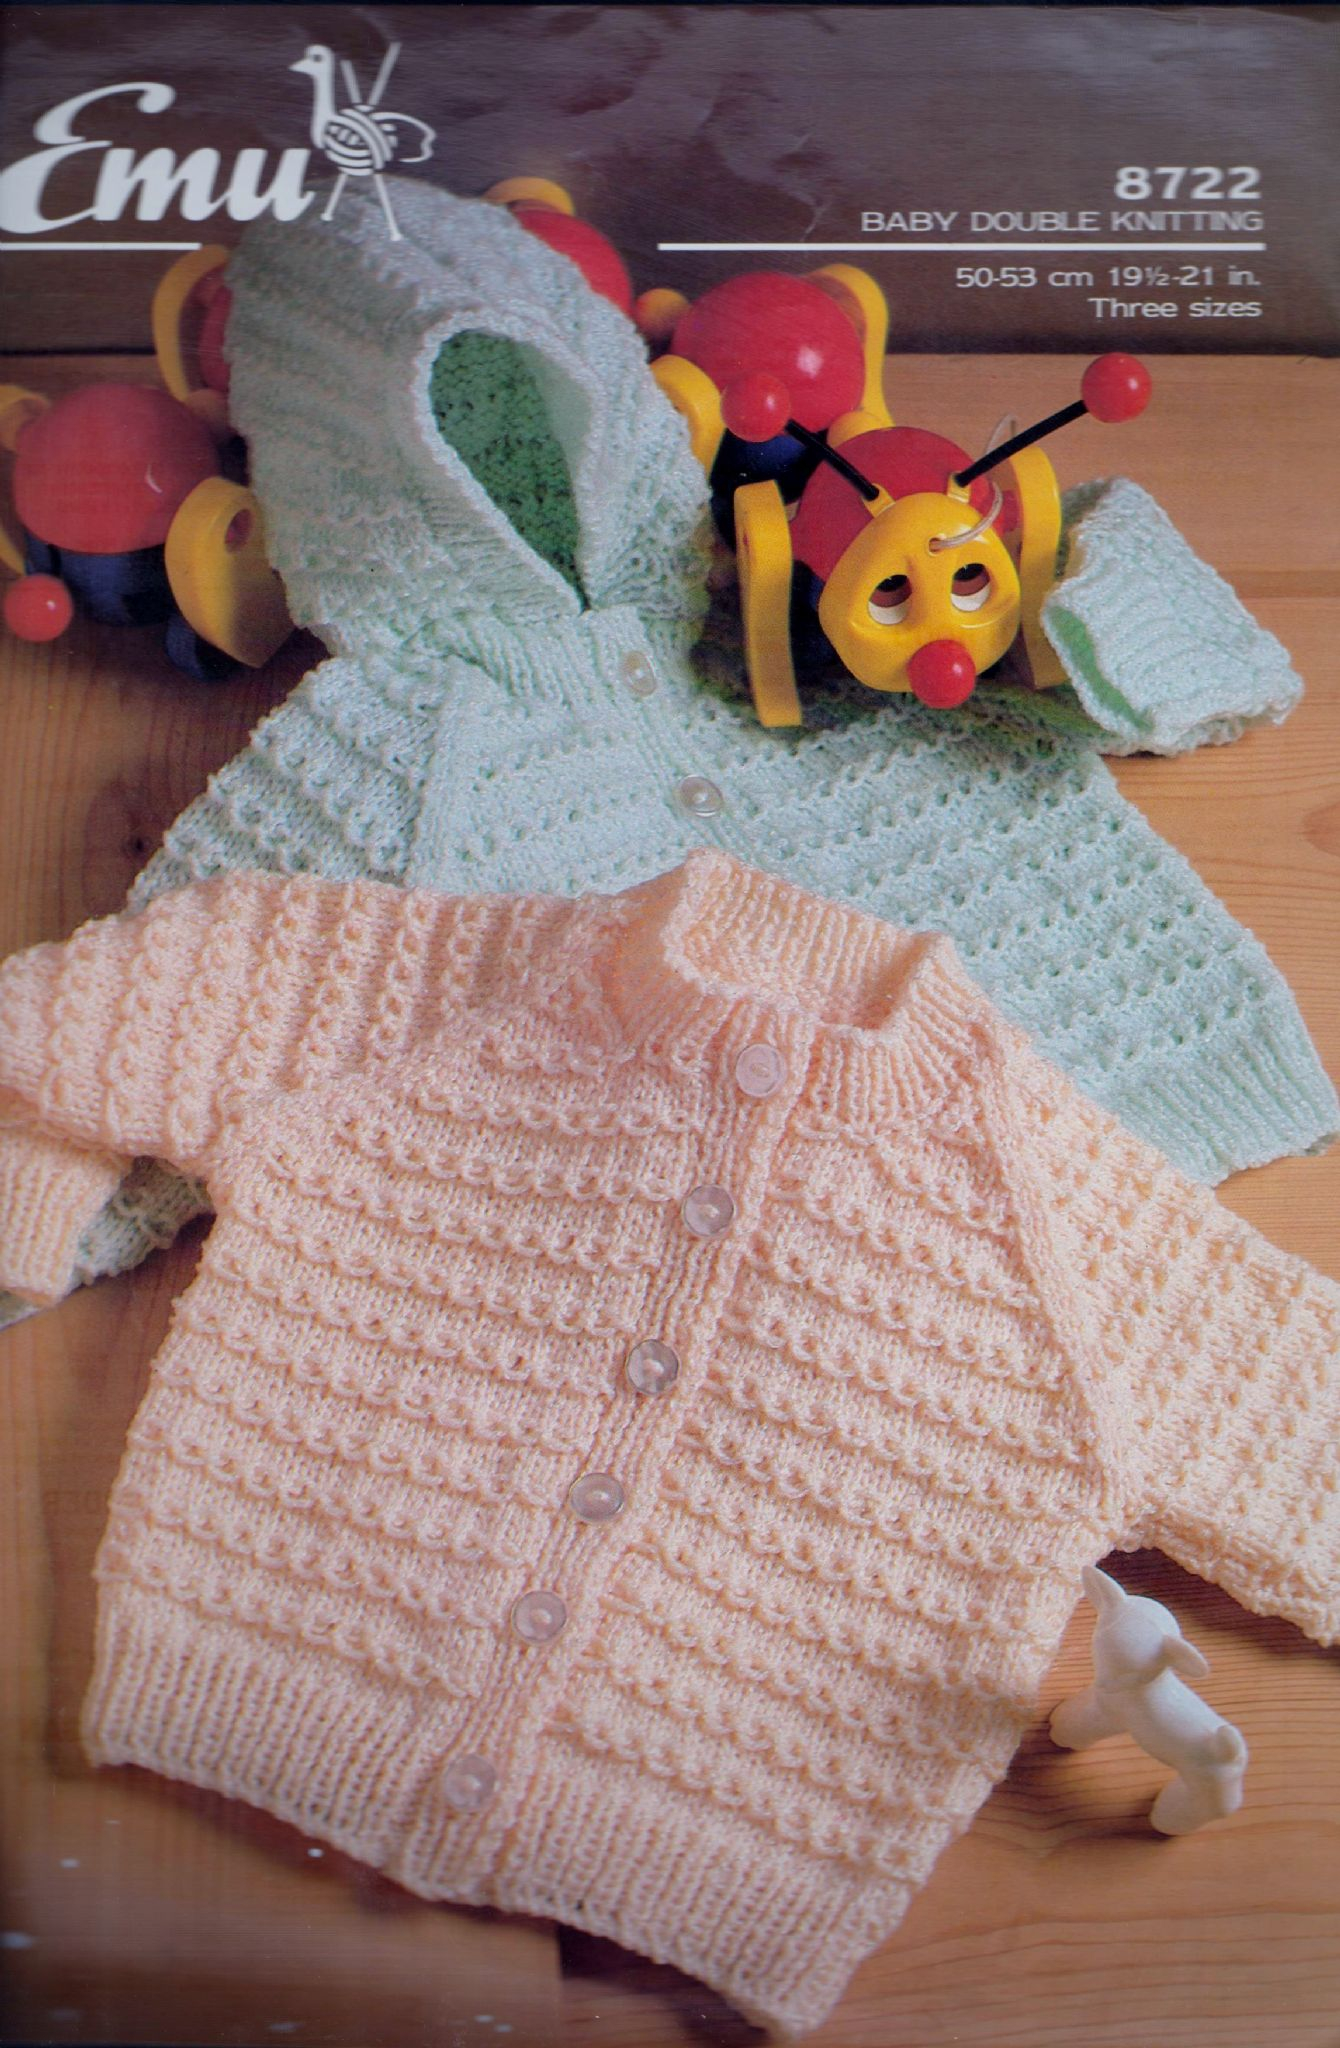 Double Knitting Baby Patterns Double Knitting Patterns To Download